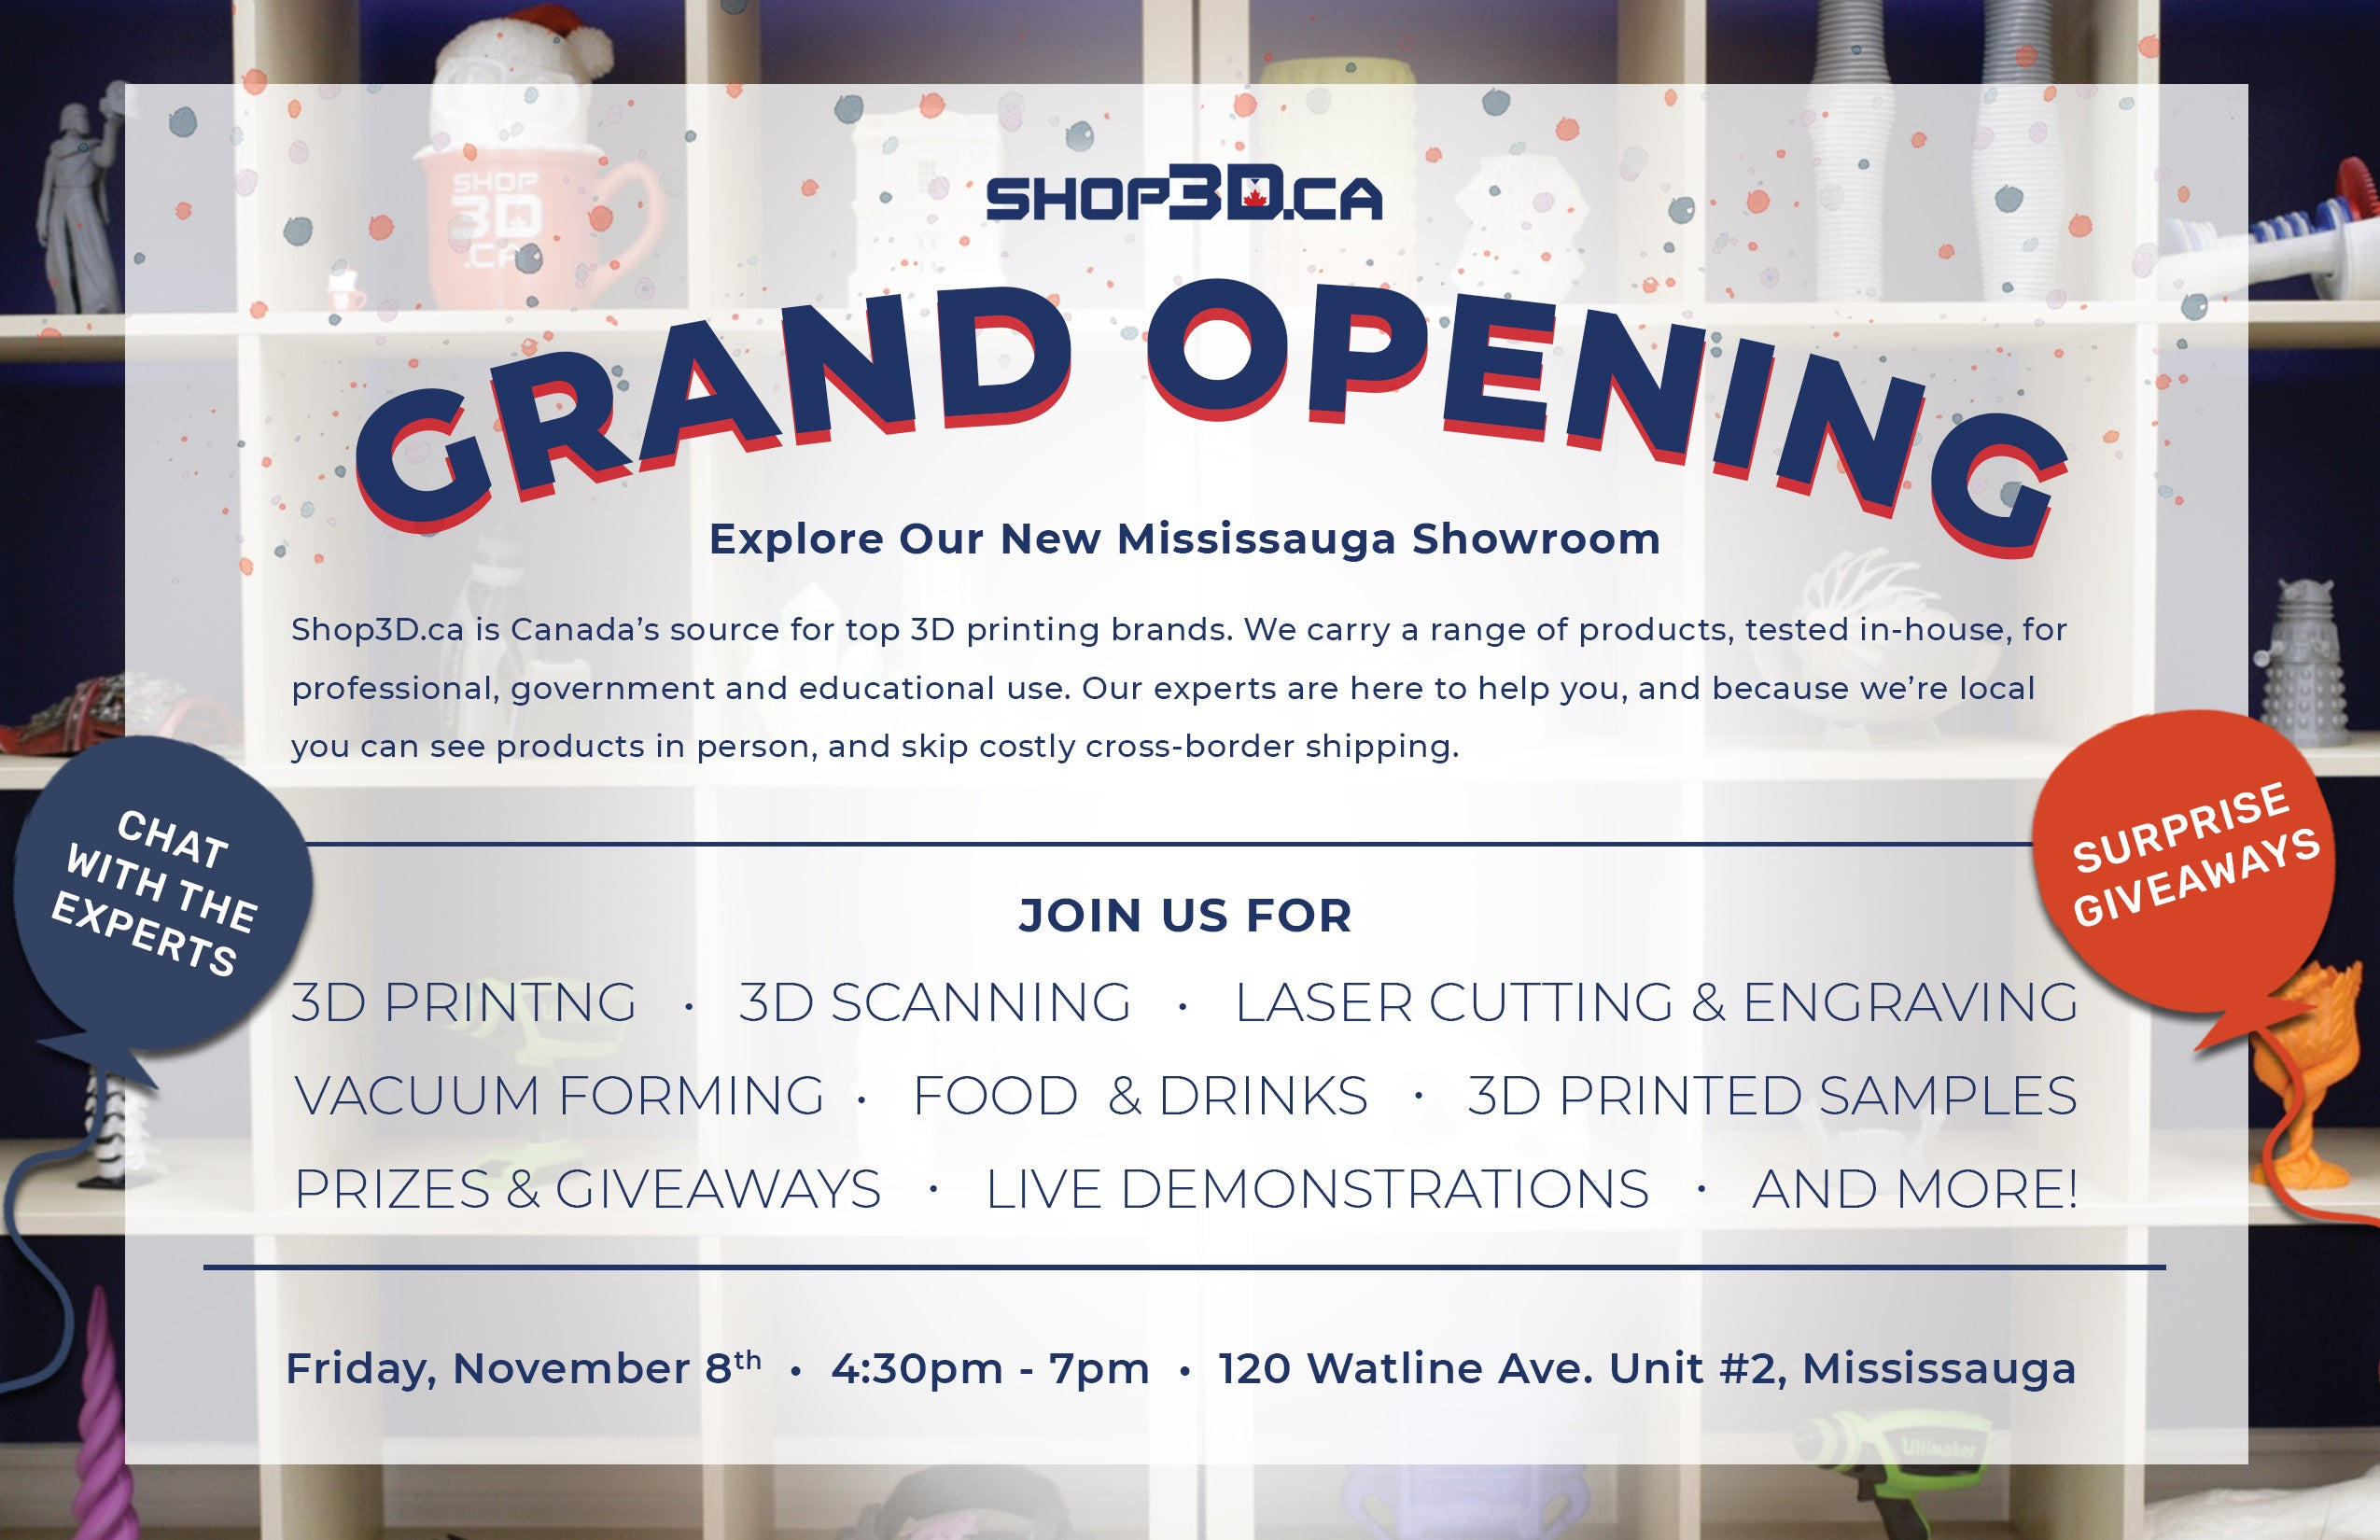 Shop3D.ca Mississauga Grand Opening